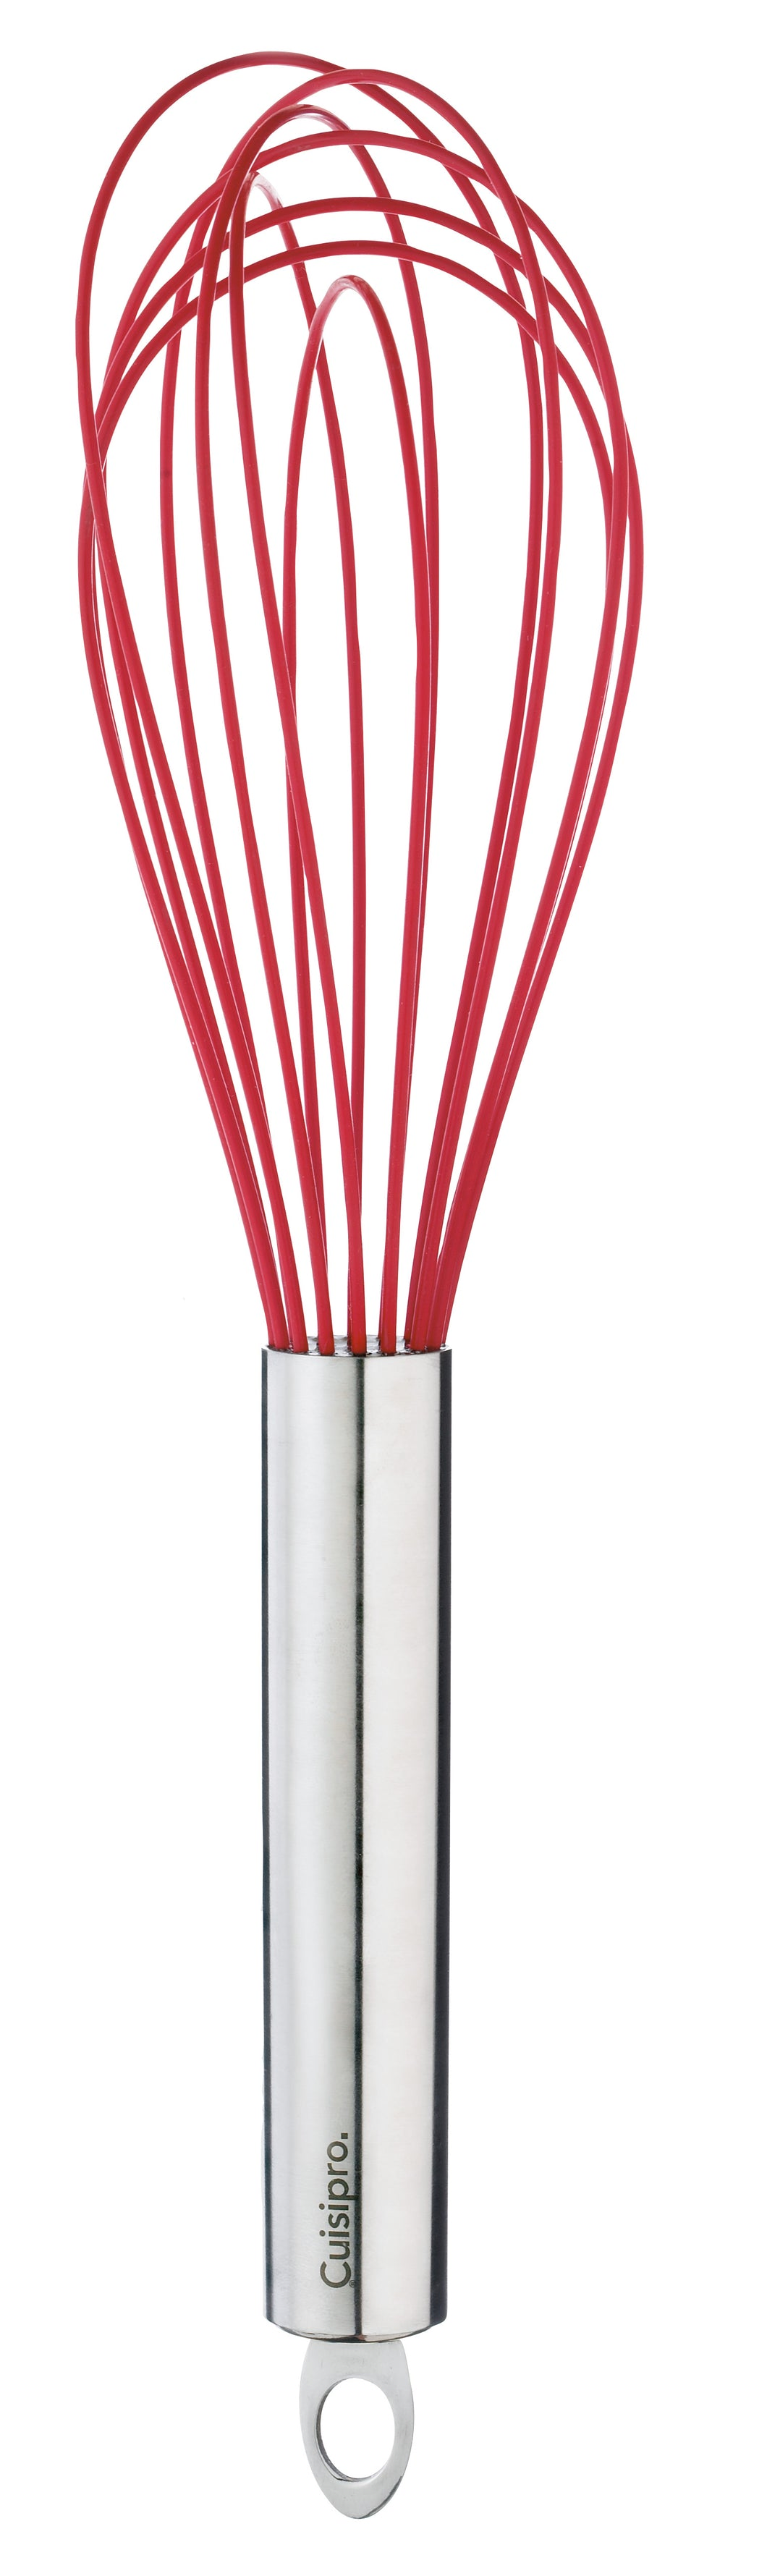 Cuisipro Balloon Whisk - Non Stick 12